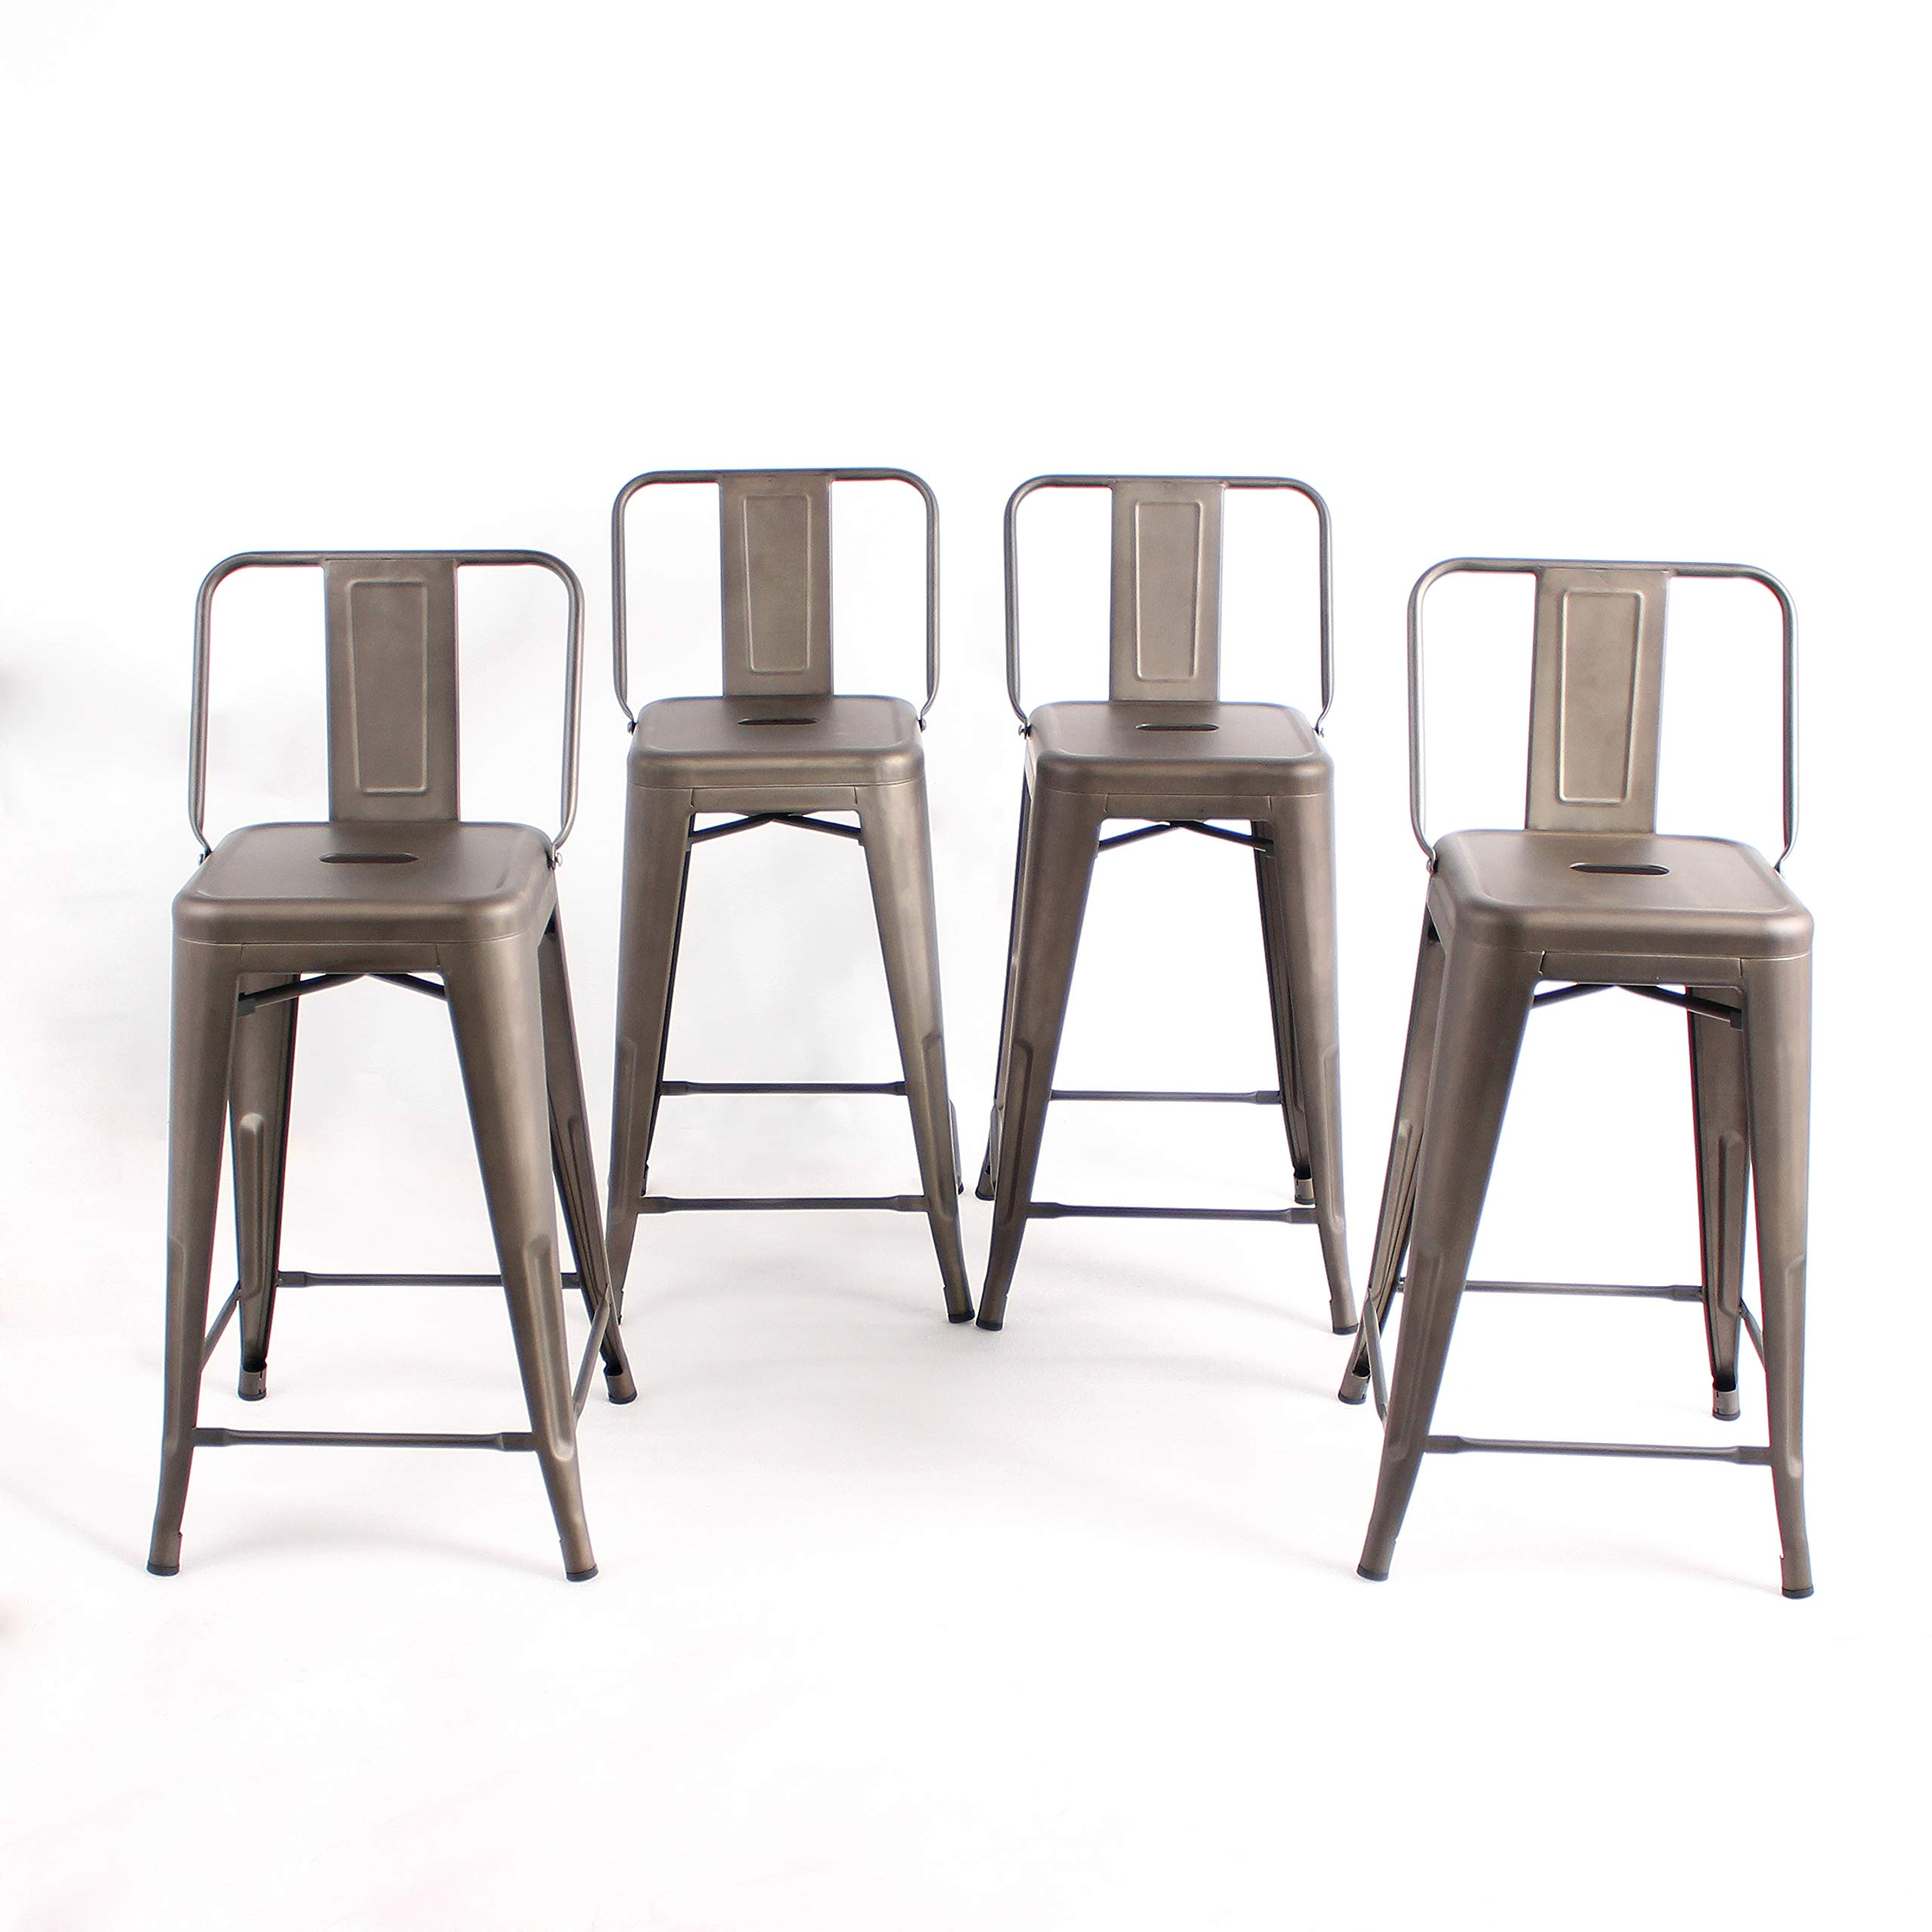 Buschman Set of 4 Bronze 24 Inch Counter Height Metal Bar Stools with Medium Back Indoor Outdoor by Buschman Store